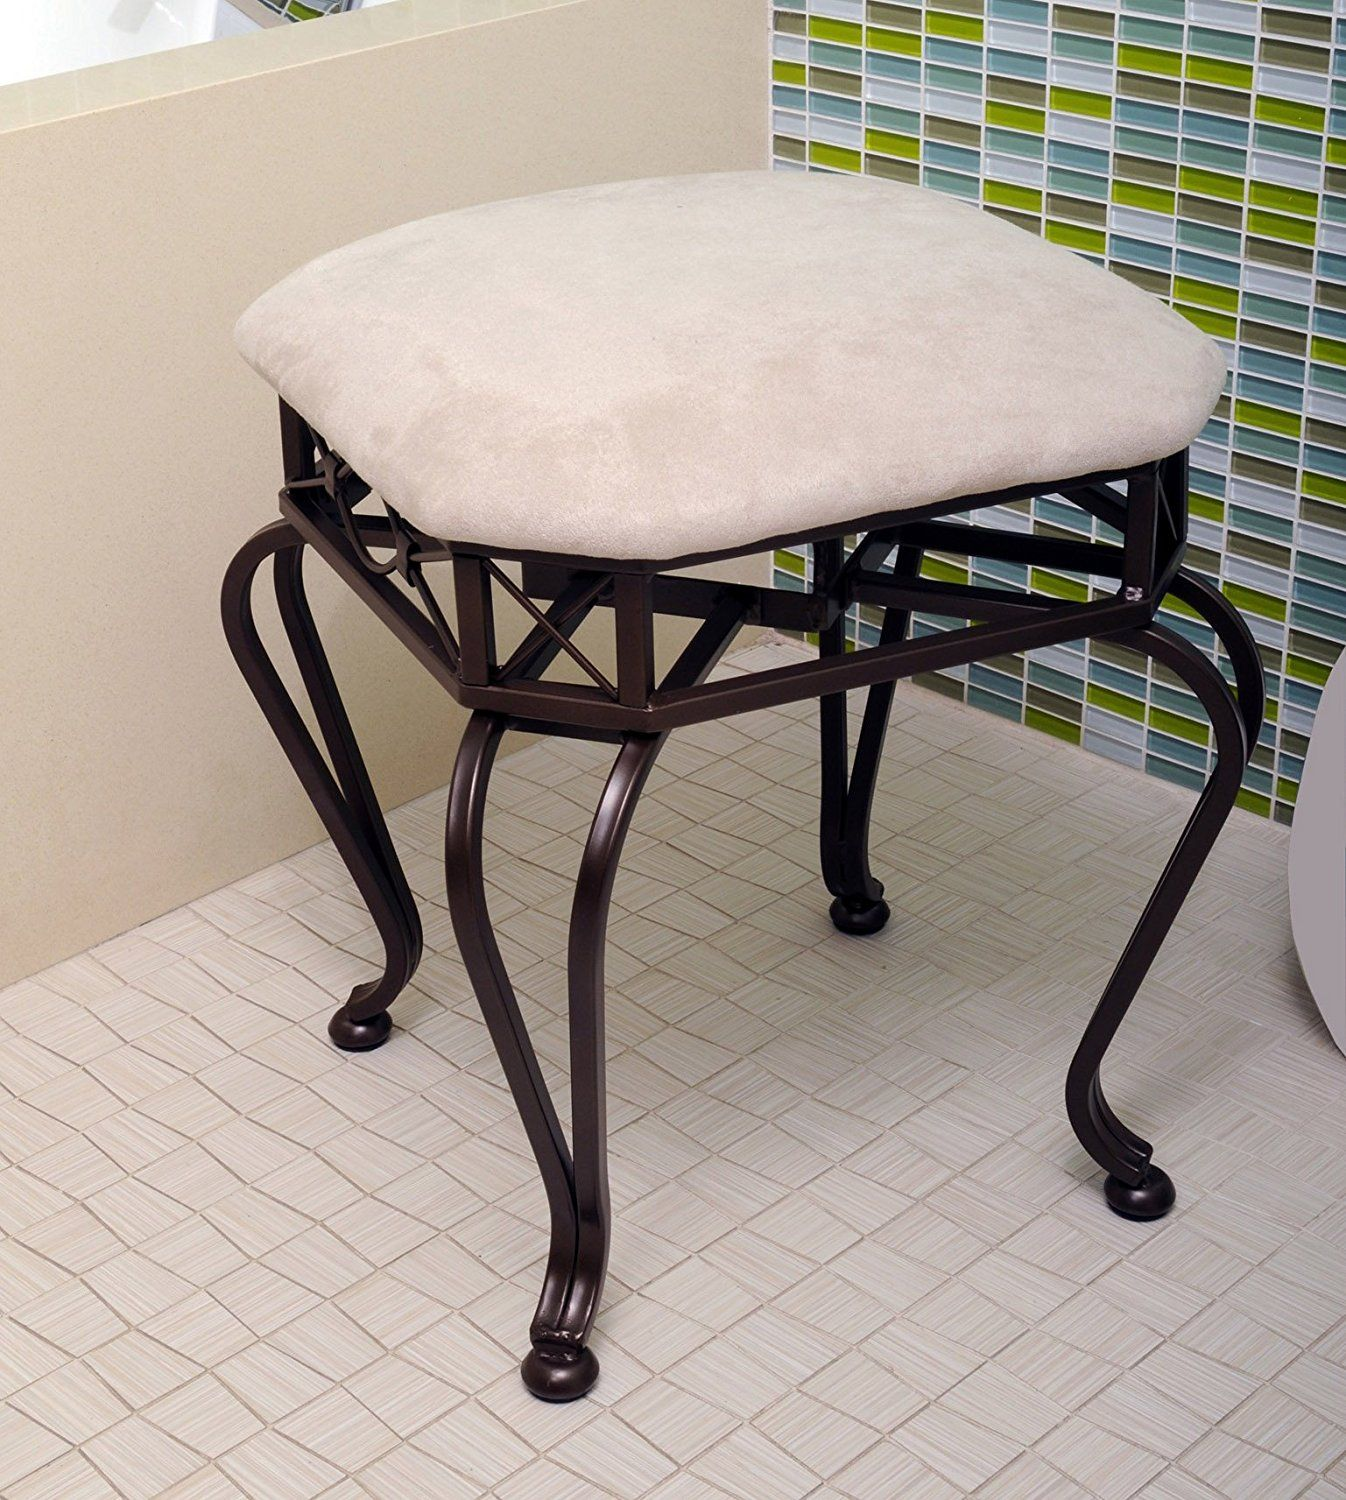 Vanity Chairs For Bathroom | BEDROOM FURNITURE | Pinterest ...